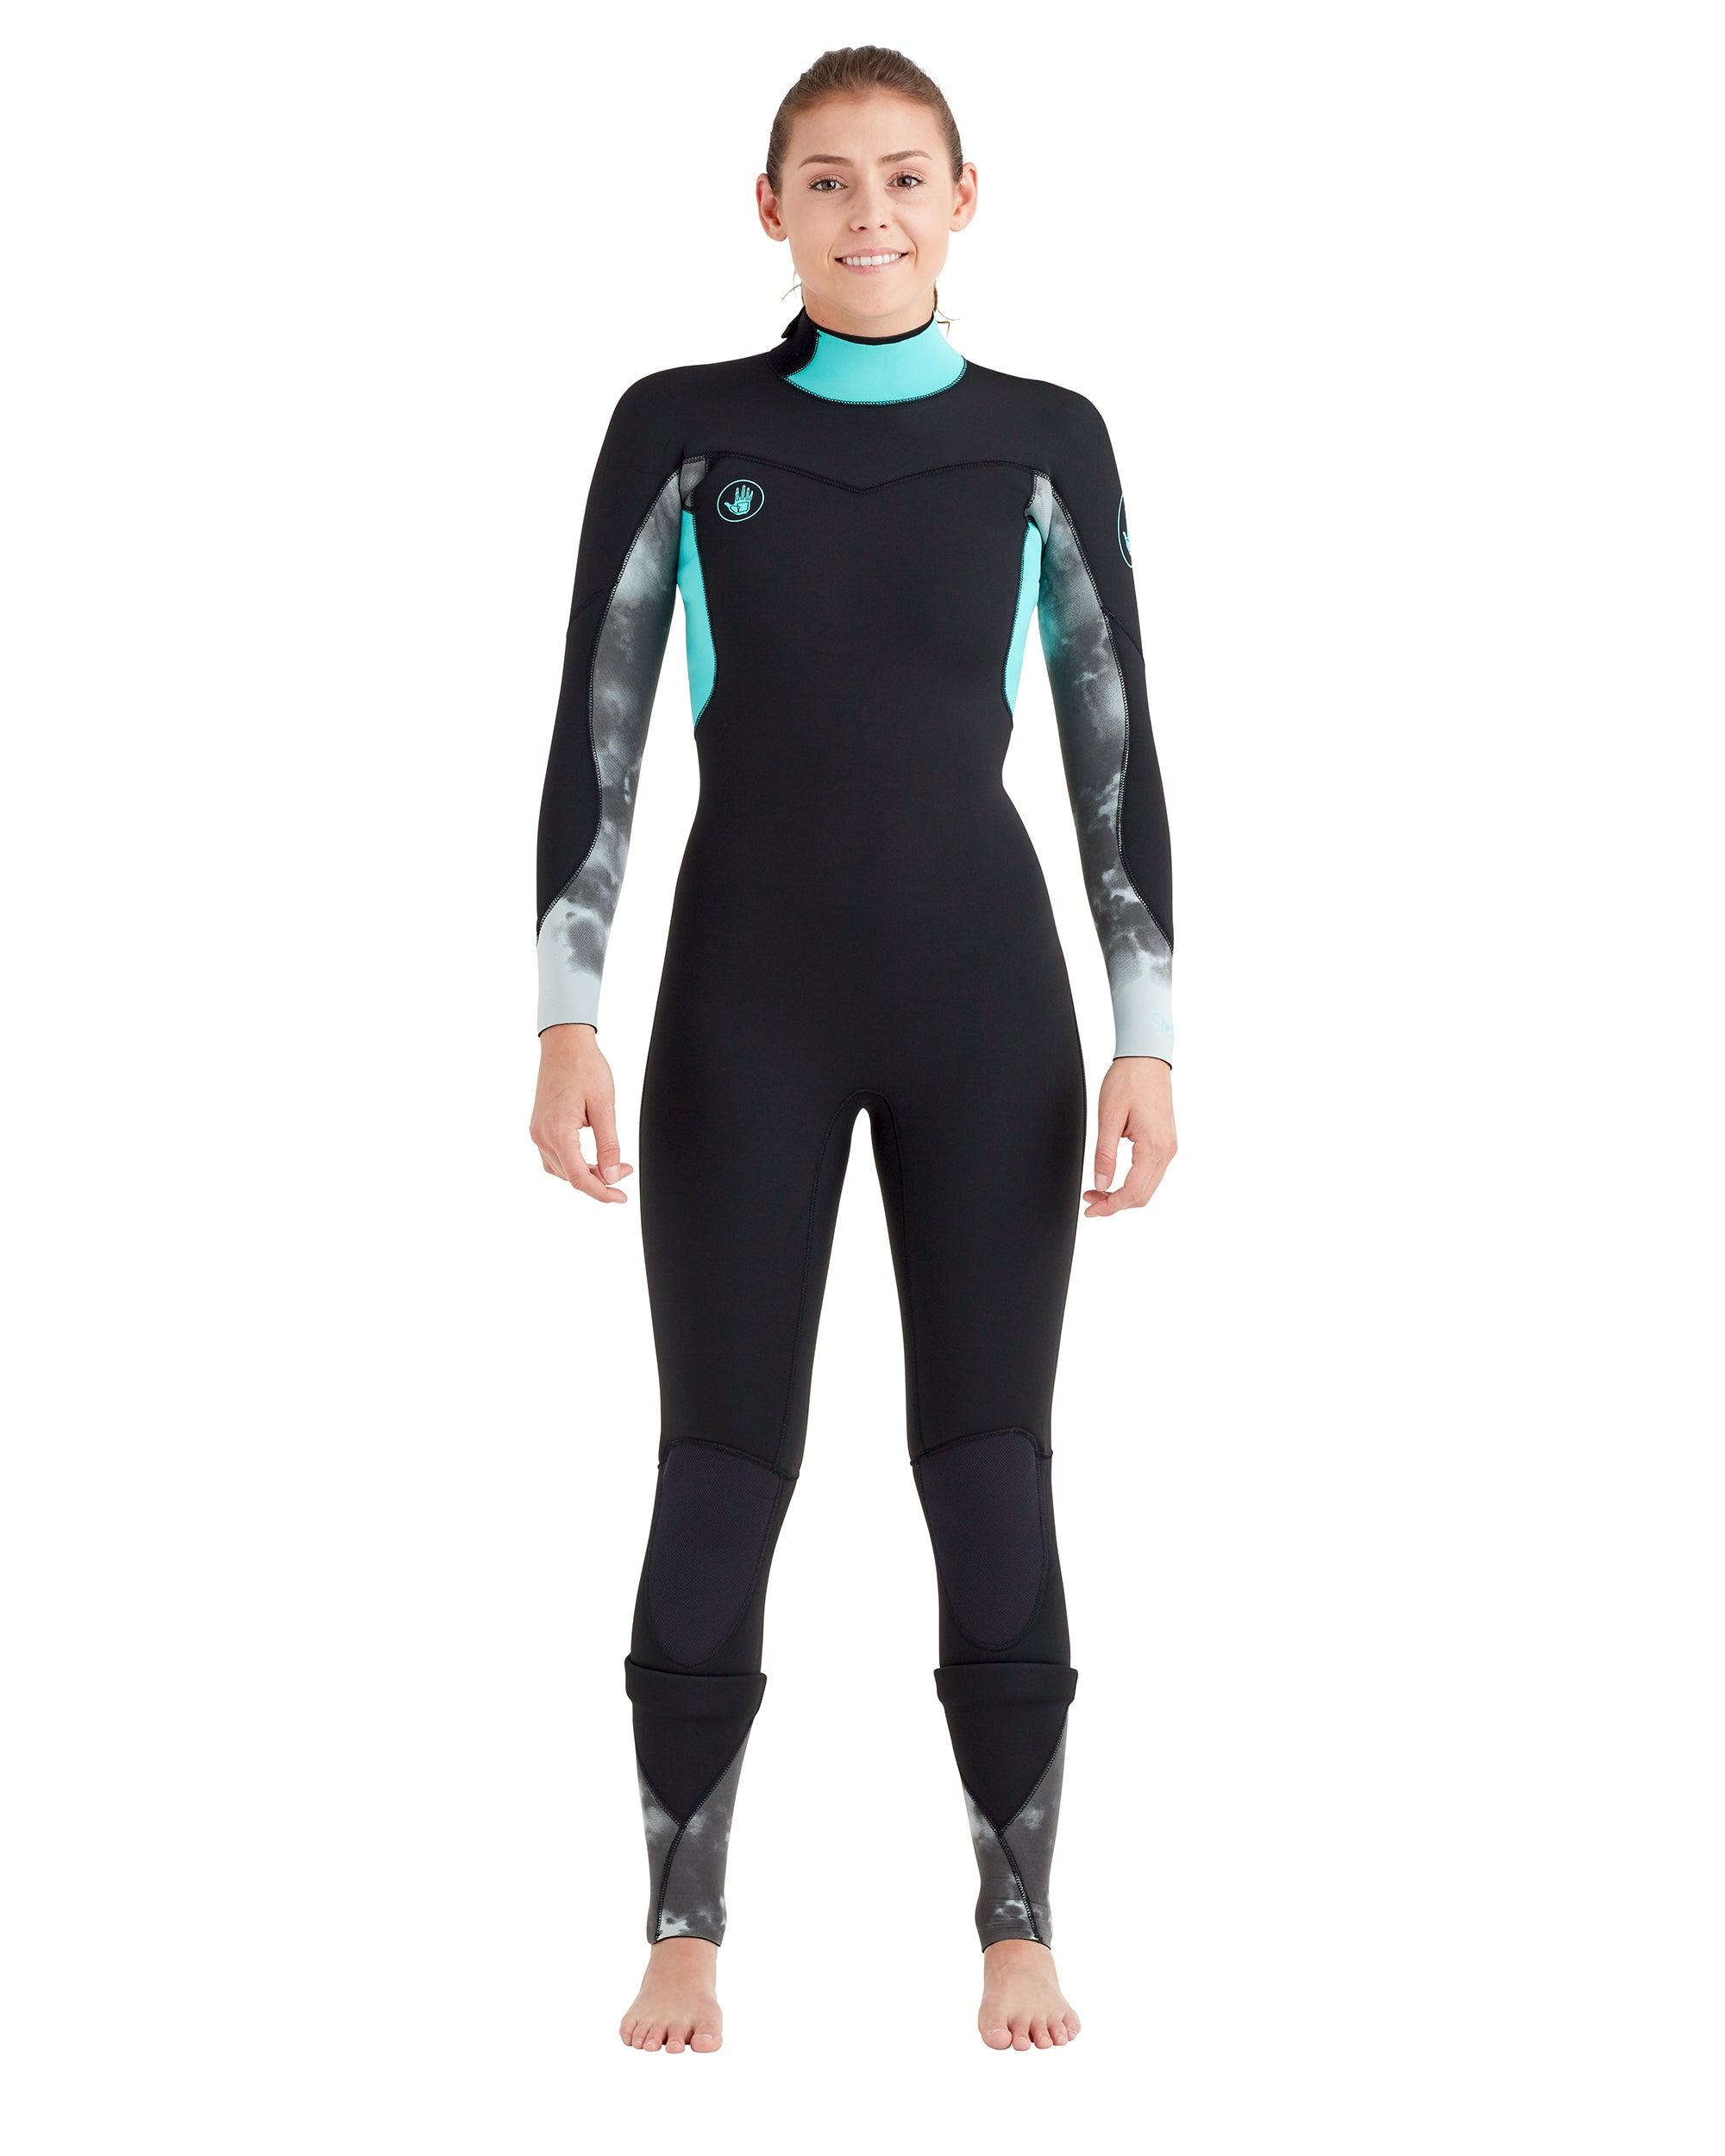 Women s 4 3mm Stellar Back-Zip Fullsuit - Aqua – Body Glove 8c4b82983